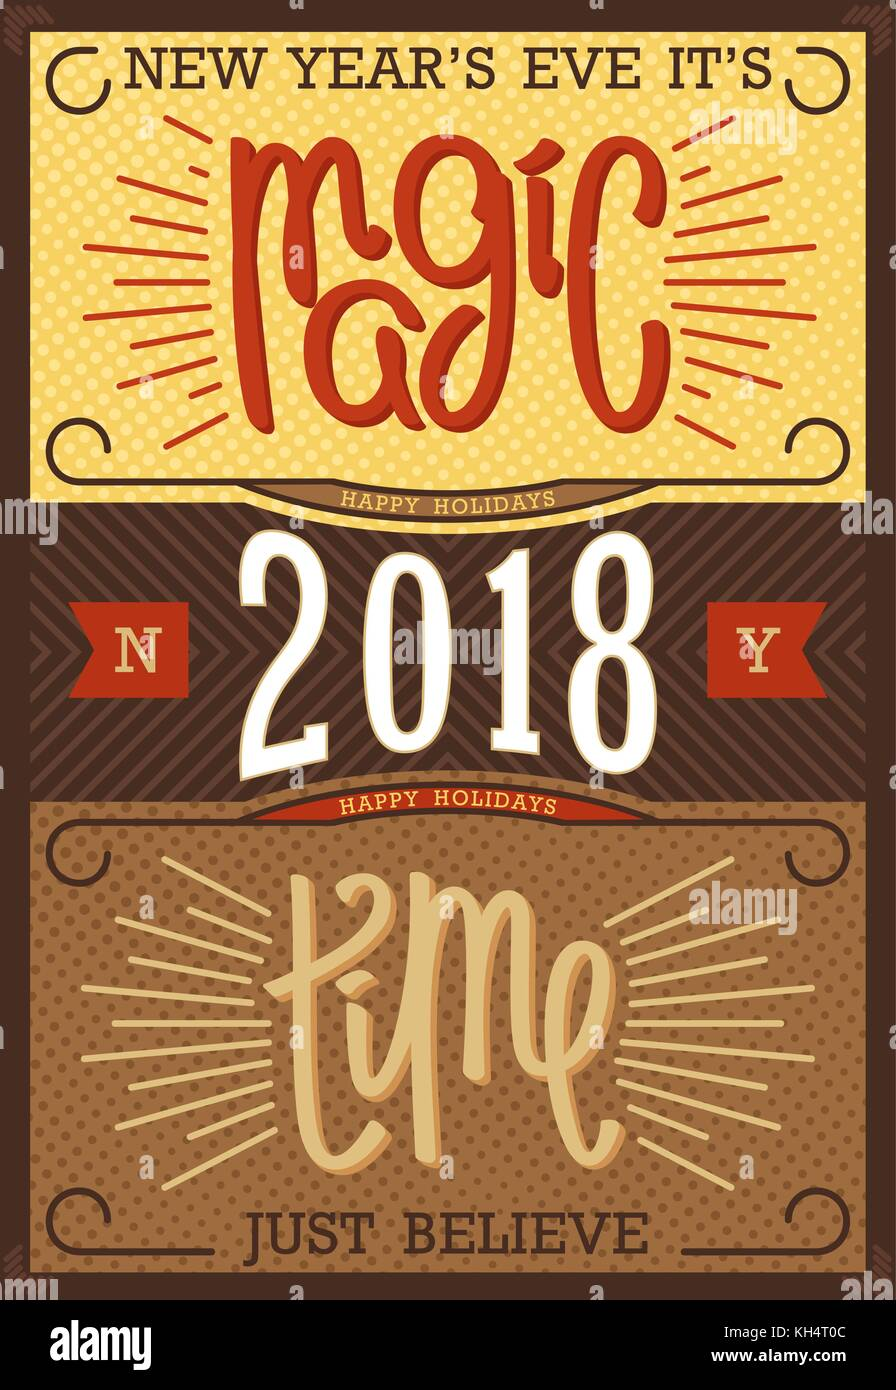 new years eve stock vector images